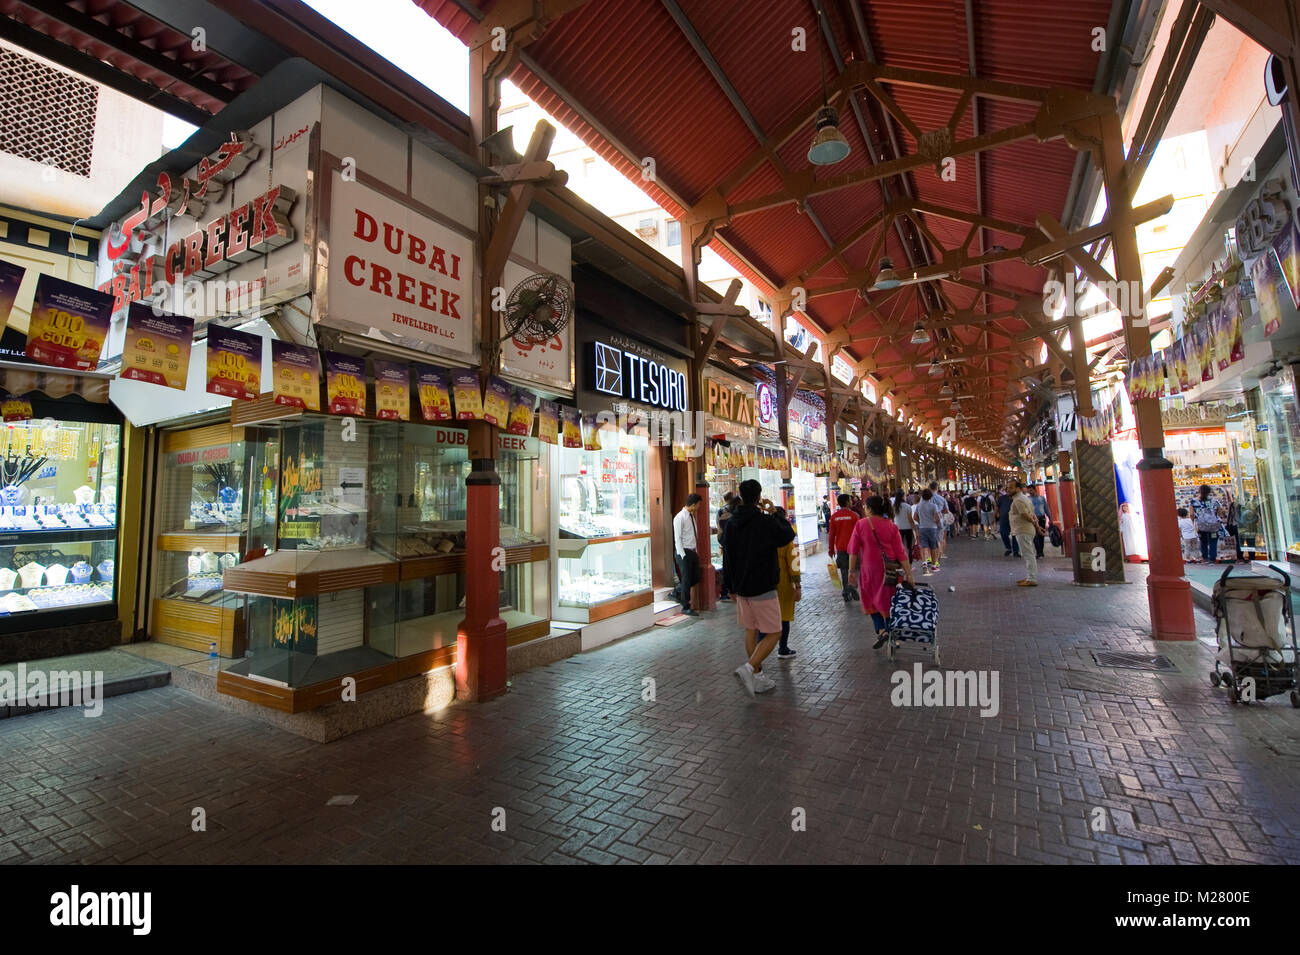 DUBAI, UNITED ARAB EMIRATES - JAN 02, 2018: City of gold is a bazaar in Dubai with a lot of shops who sell golden - Stock Image